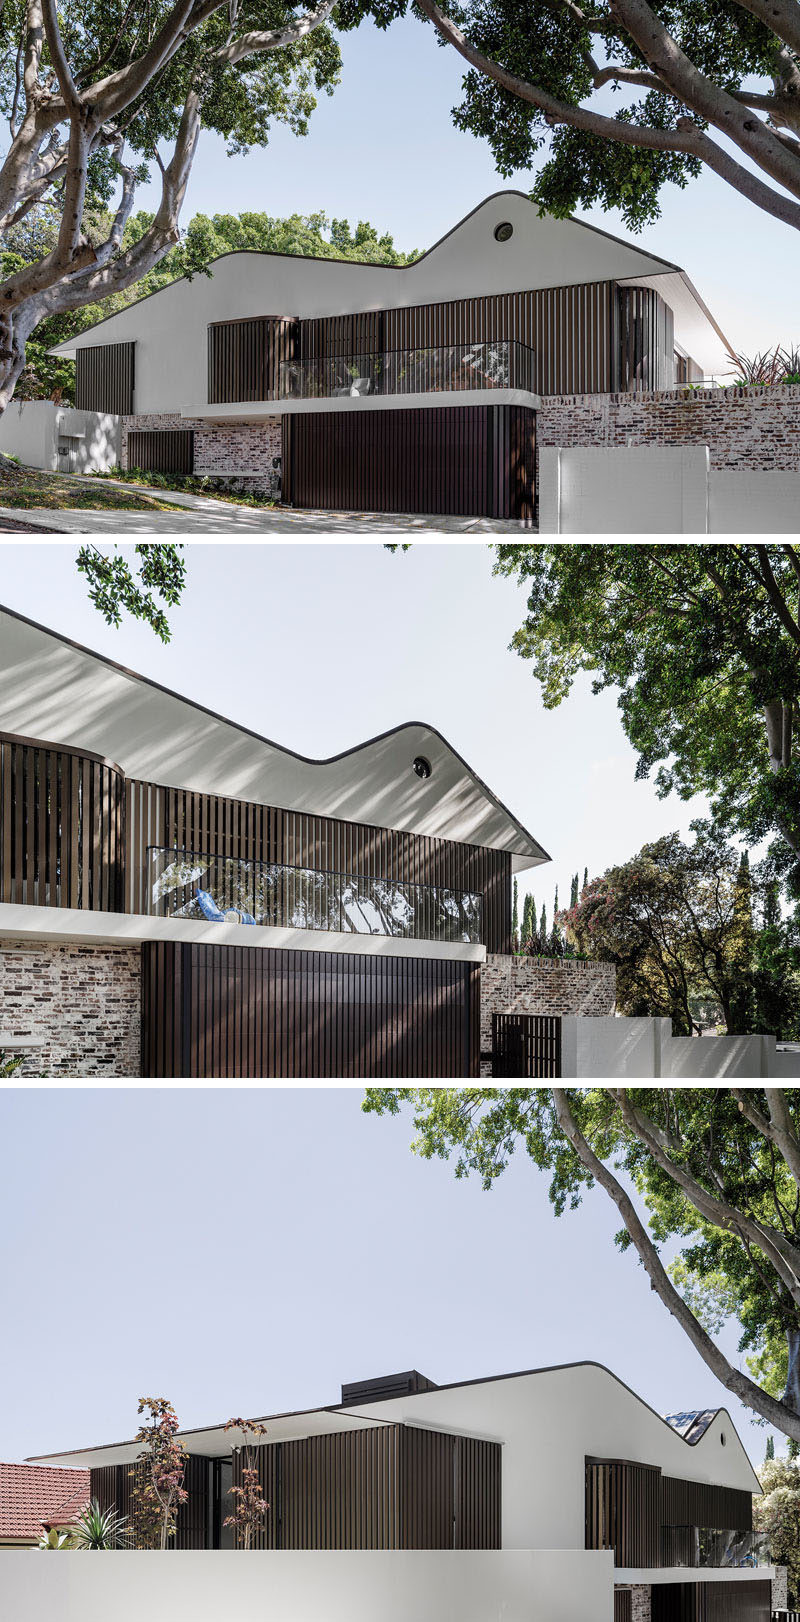 This house features white masonry gables and recycled bricks, combined with aluminum battens that screen the windows that face the street, creating a contemporary facade.